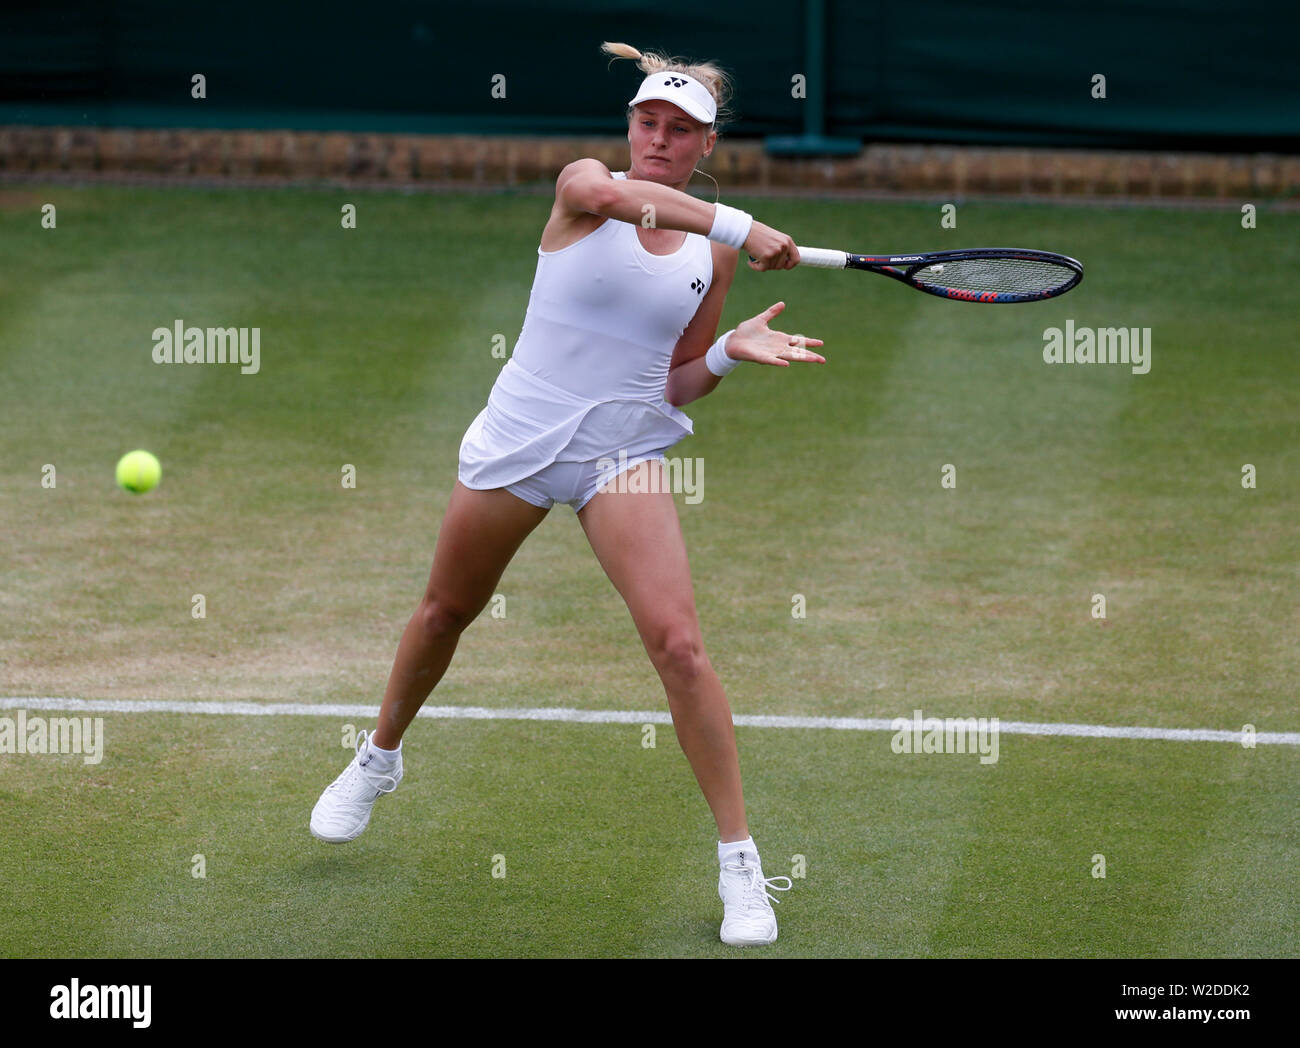 Dayana Yastremska High Resolution Stock Photography And Images Alamy